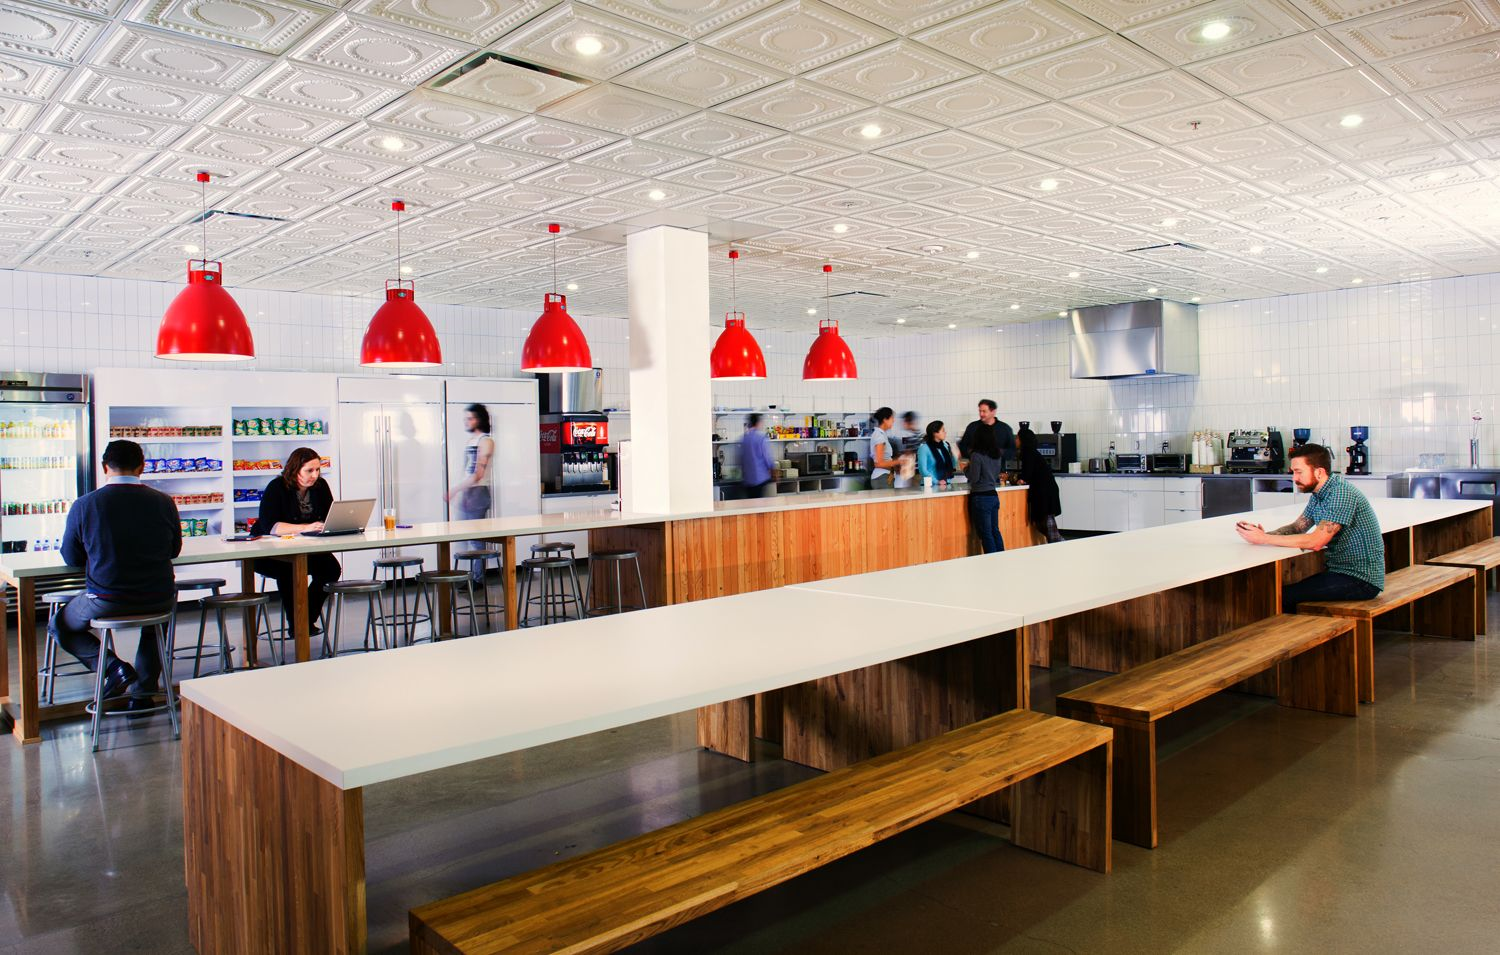 office cafeteria design. office cafeteria design related image egd pinterest corporate f